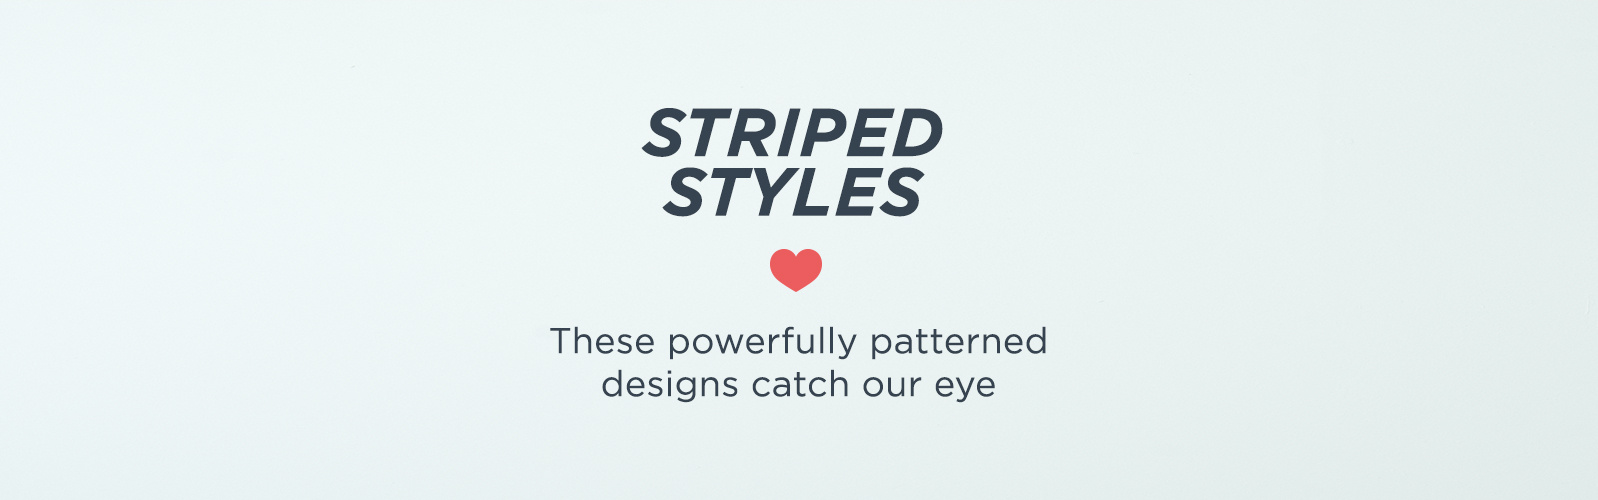 Striped Styles — These powerfully patterned designs catch our eye